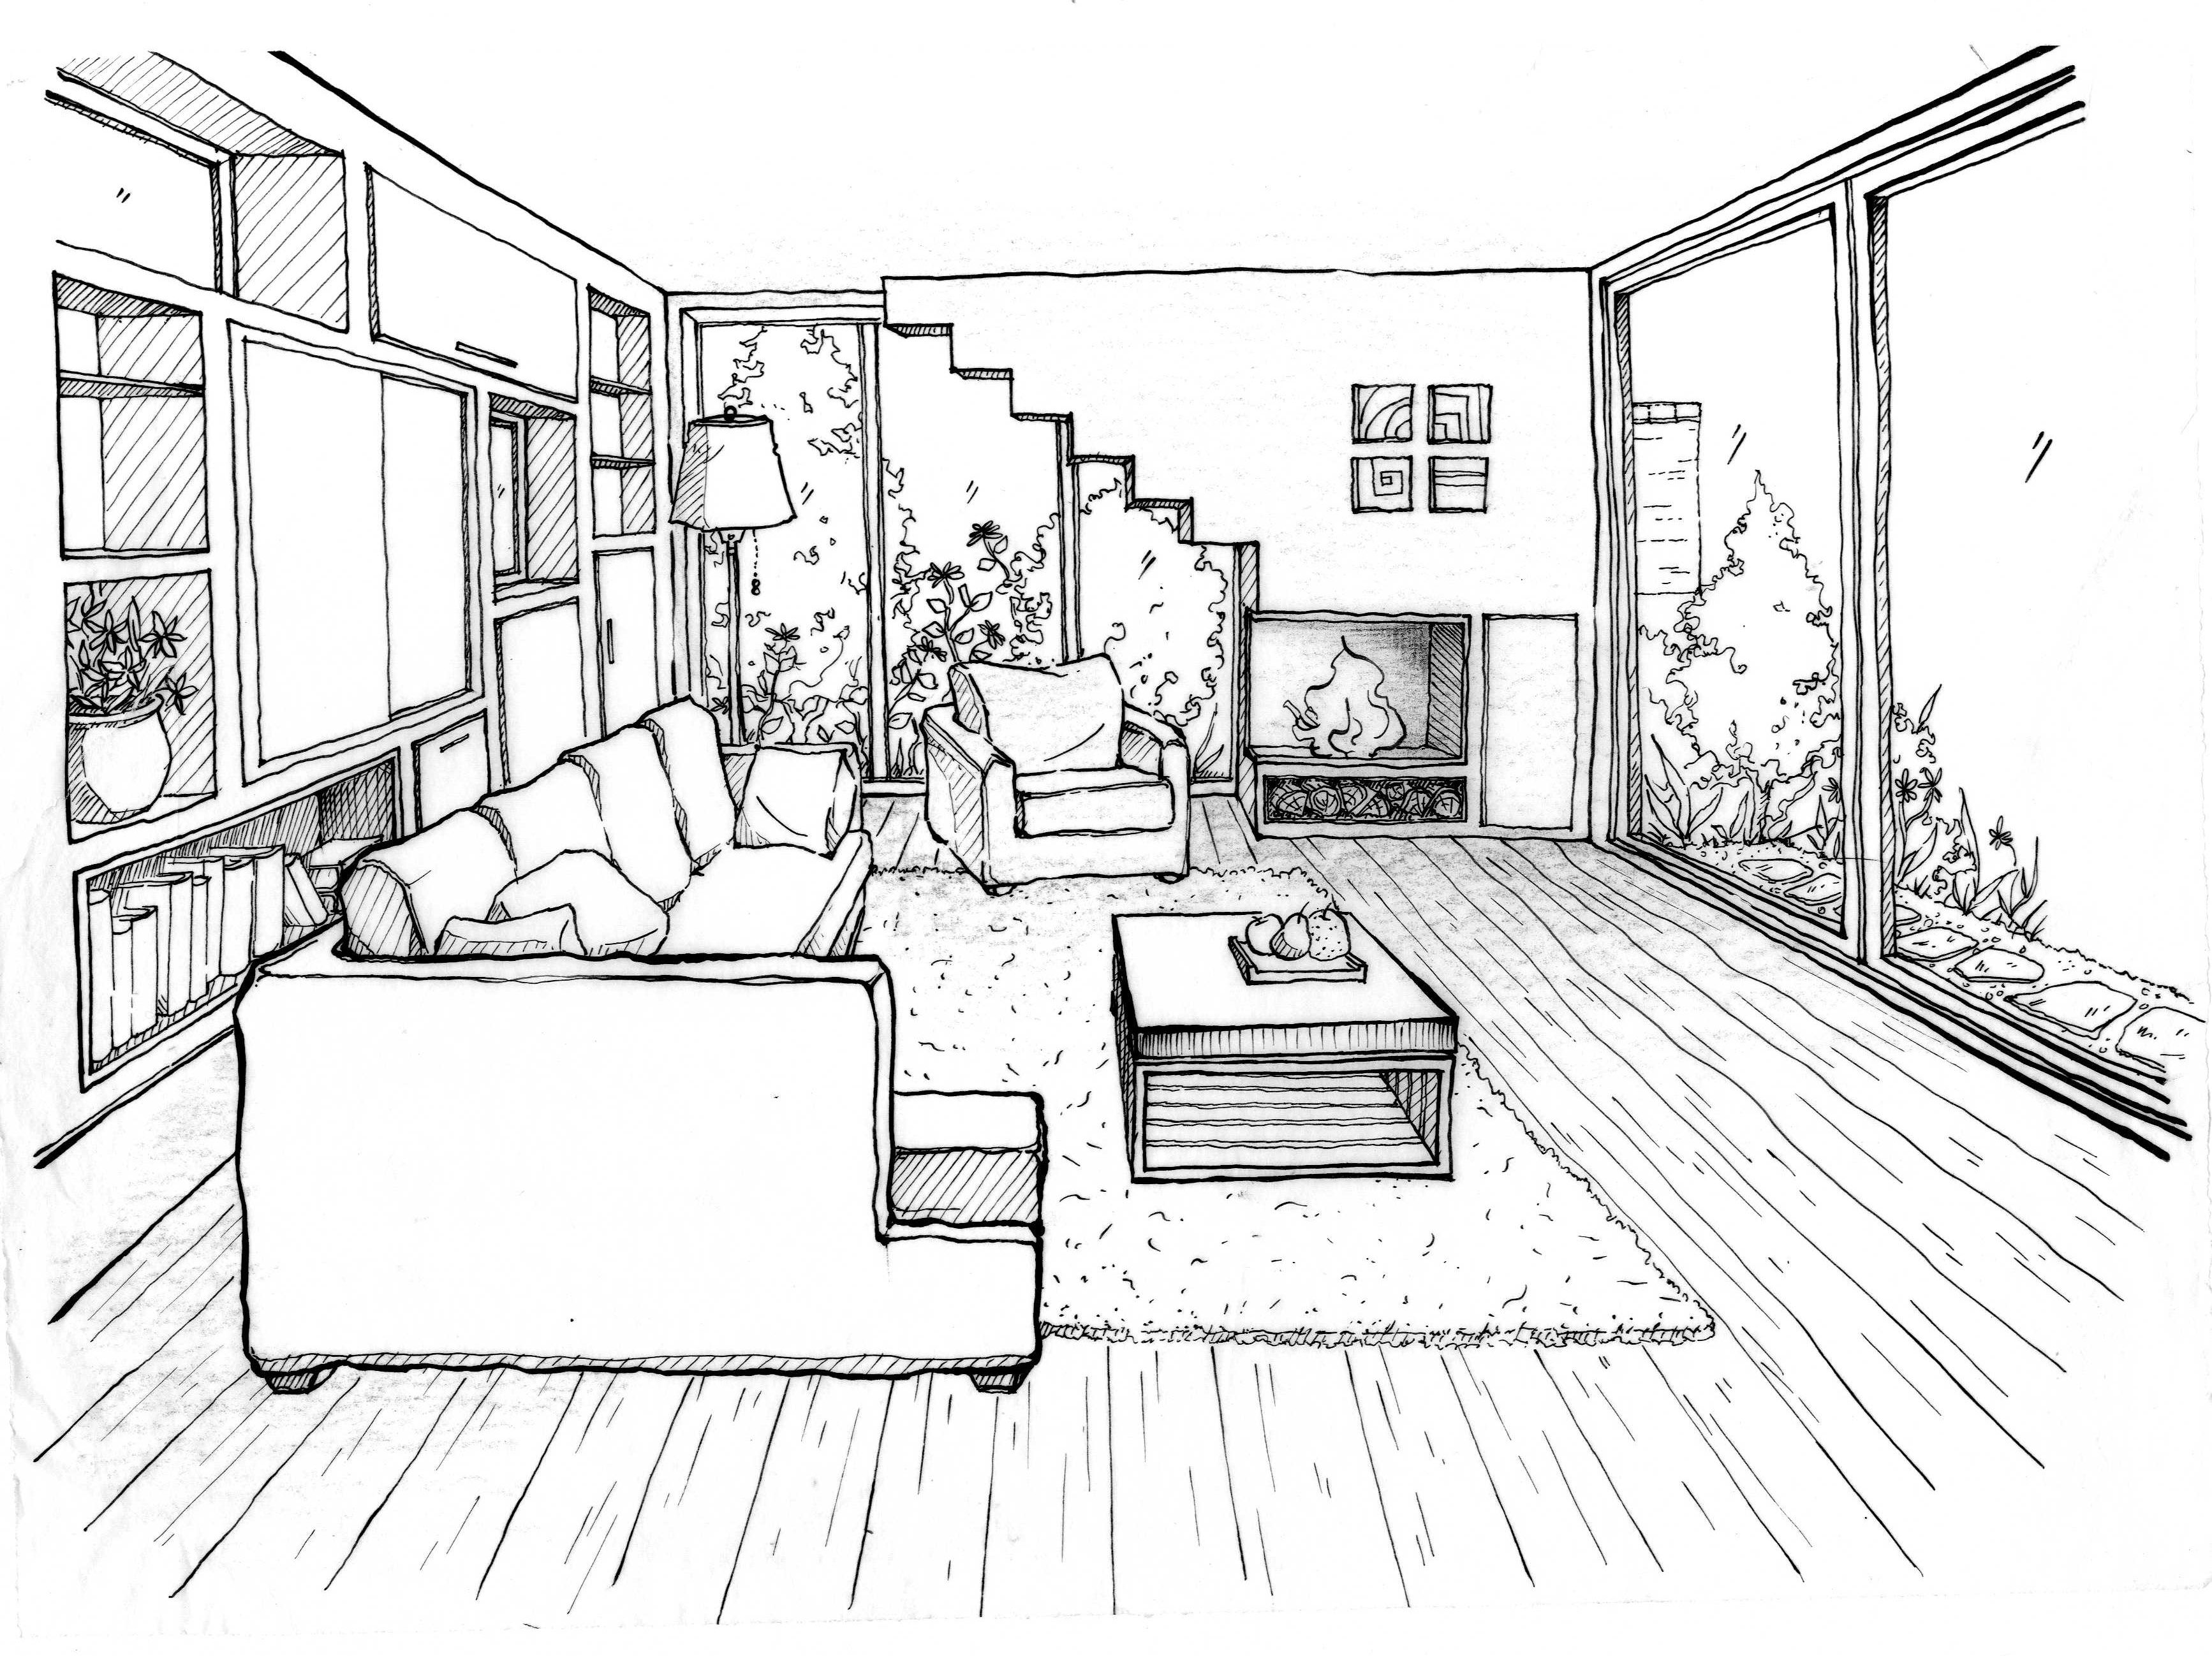 3468x2597 How To Draw A 1 Point Perspective Bedroom Image Gallery